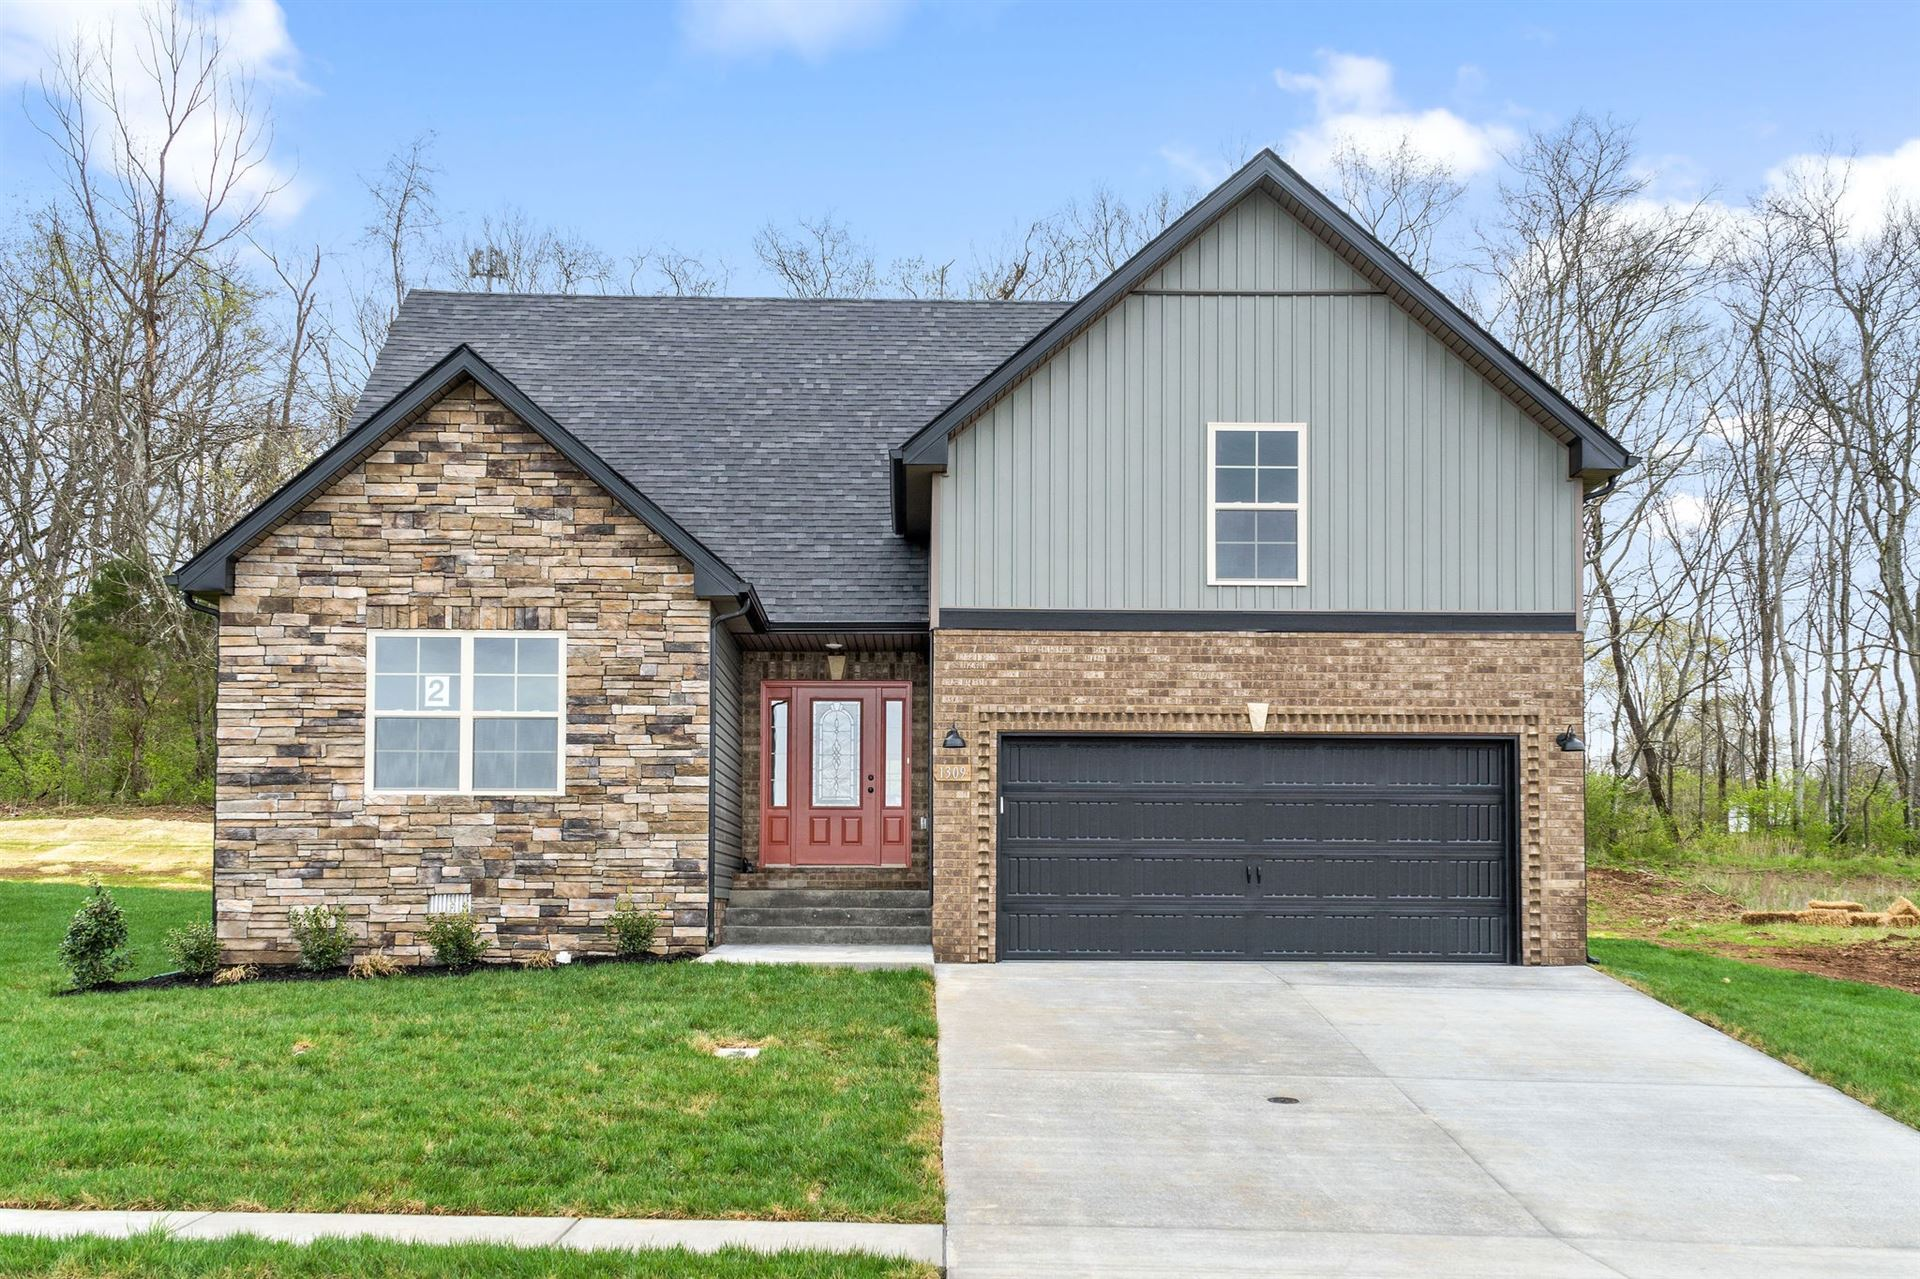 2 River Chase, Clarksville, TN 37043 - MLS#: 2182894